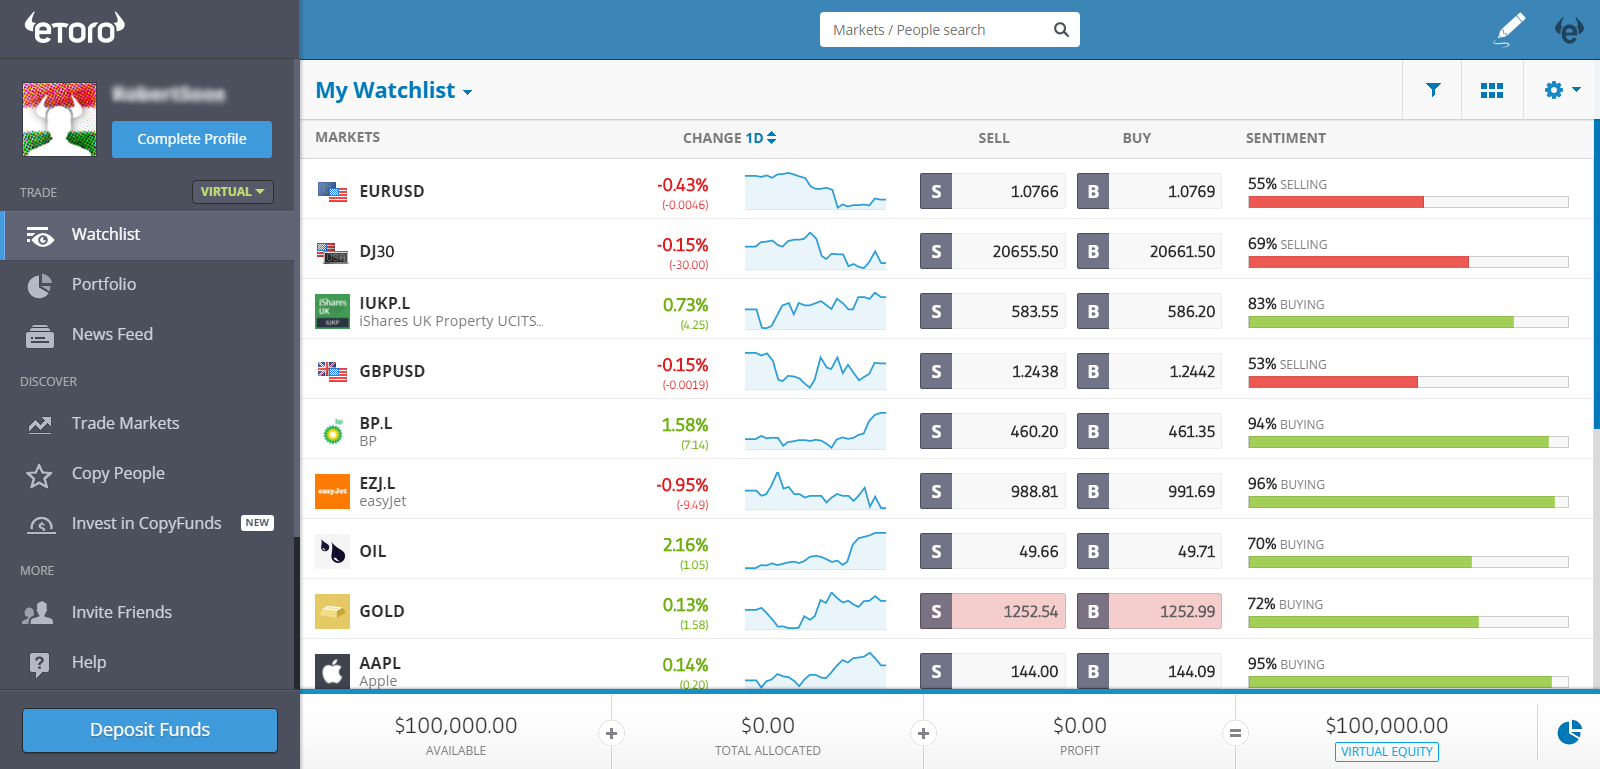 One of the Best CFD Brokers: A Screenshot of the Web Platform of Etoro